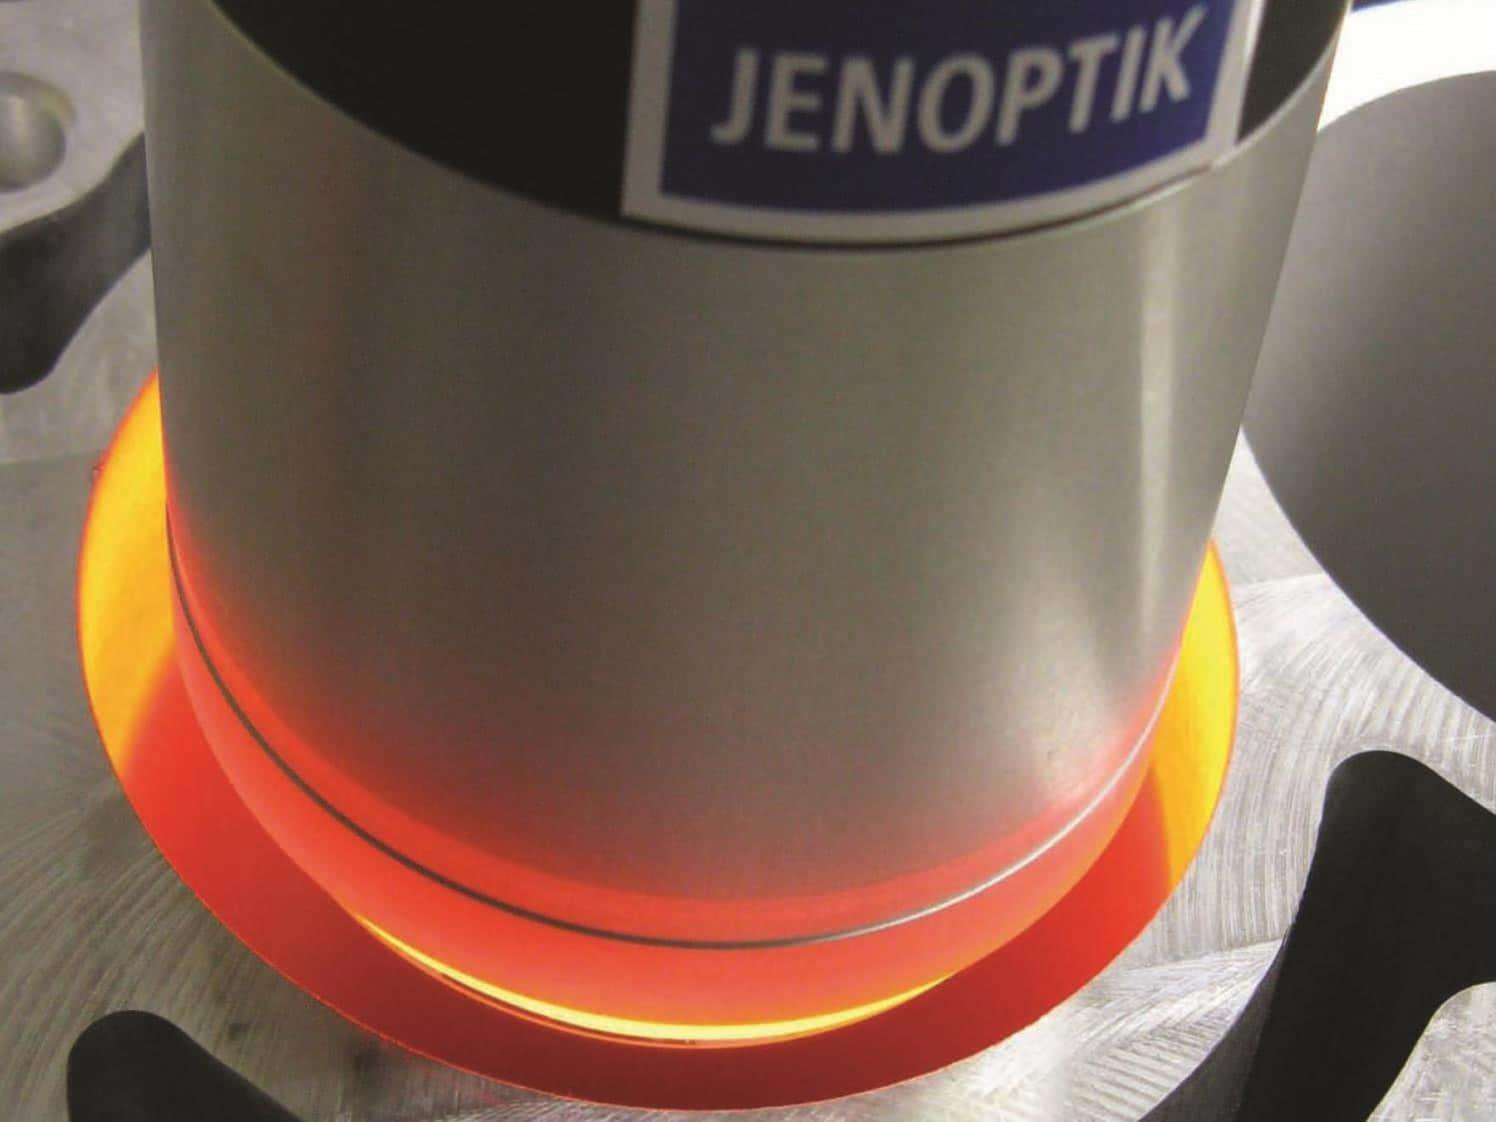 Visual surface inspection from Jenoptik delivers 100% quality control